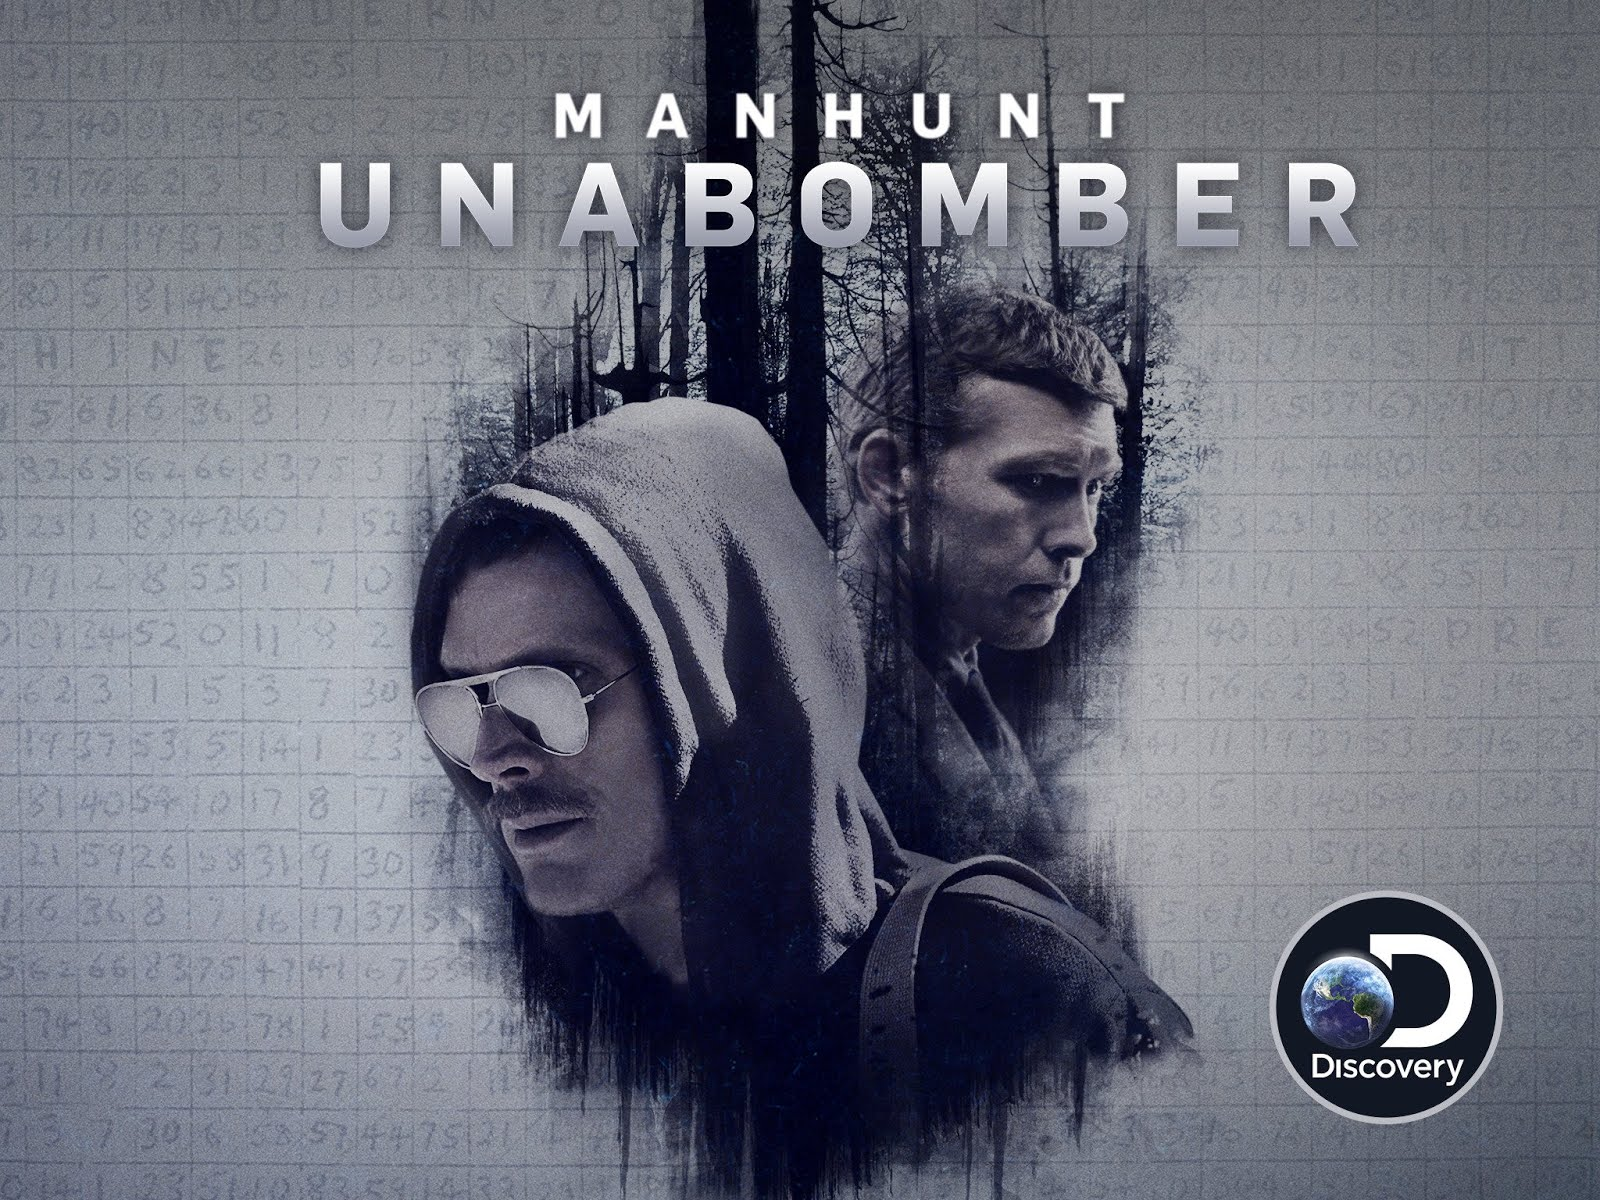 Manhunt: Unabomber es la primera temporada de la limited series de Discovery Channel